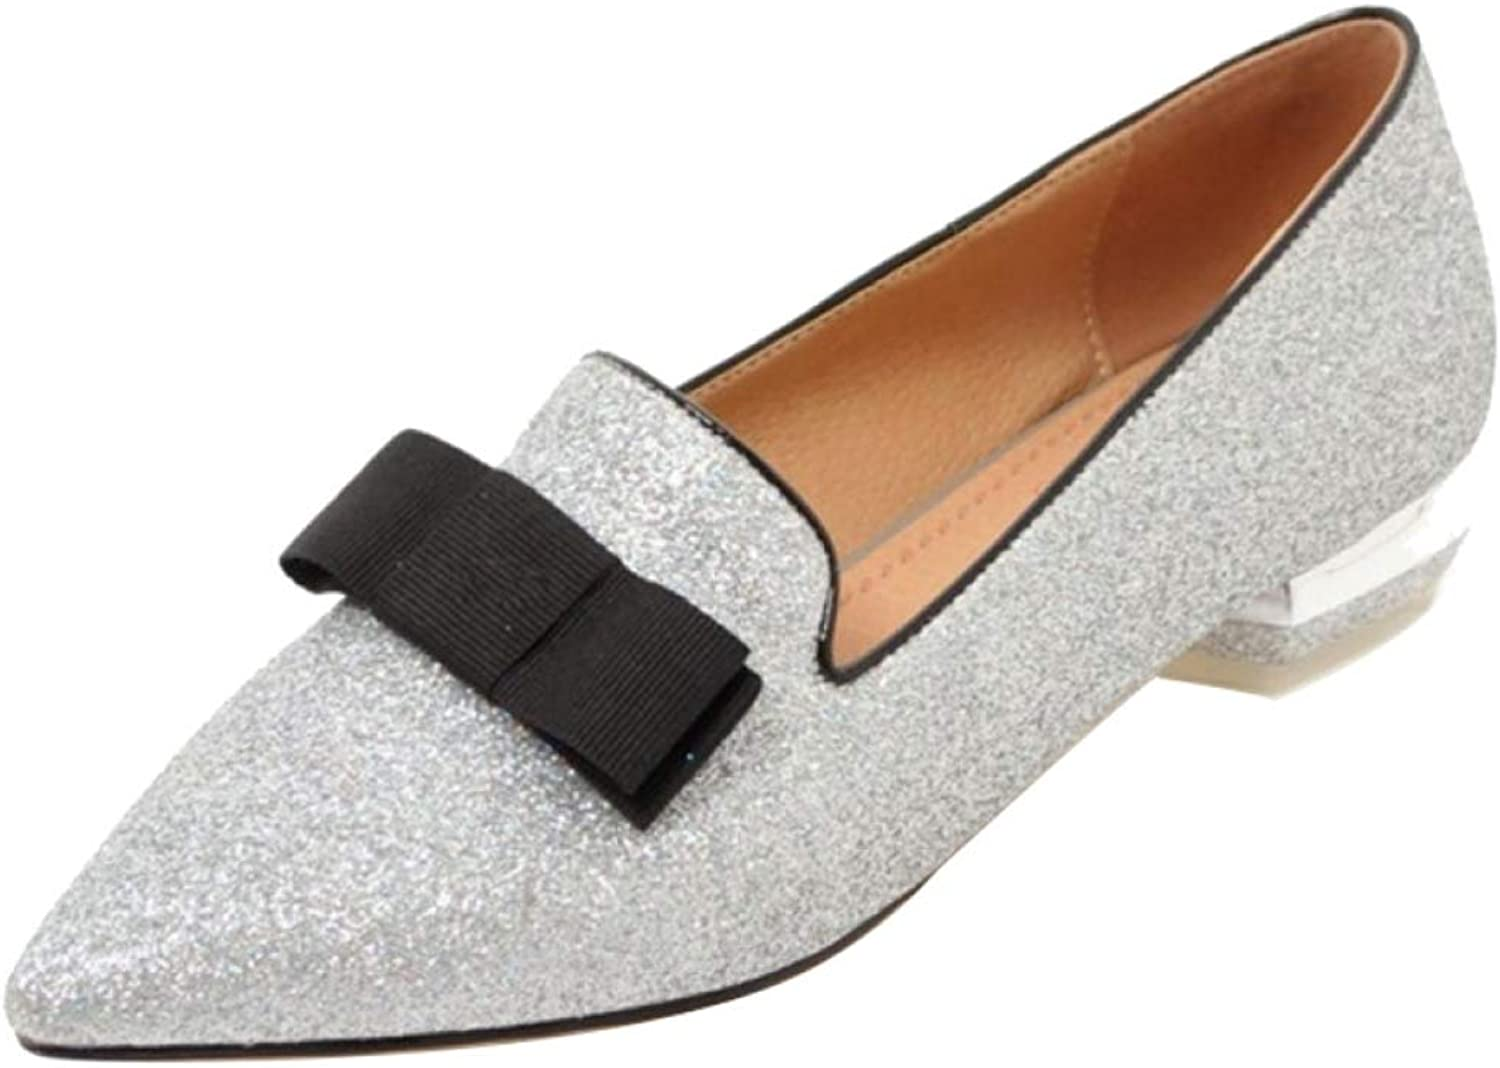 T-JULY Woman Mules Pumps with Low Heels Sequined Cloth Bling Comfortable Footwear Casual Formal Working shoes for Summer